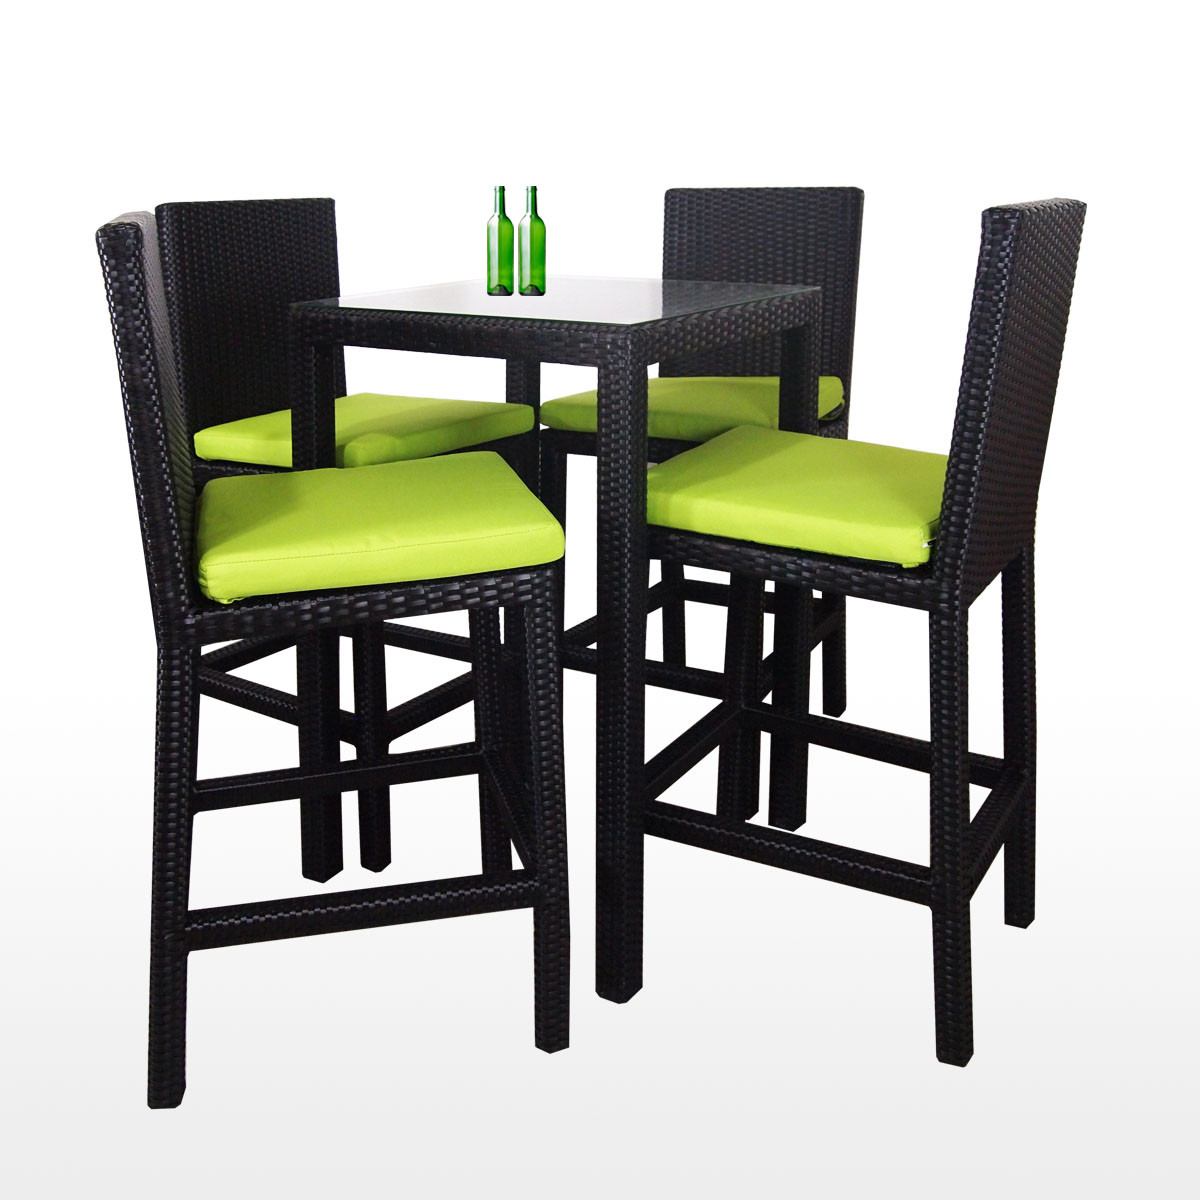 Midas 4 Chair Bar Set Green Cushion Furniture Home Decor Fortytwo